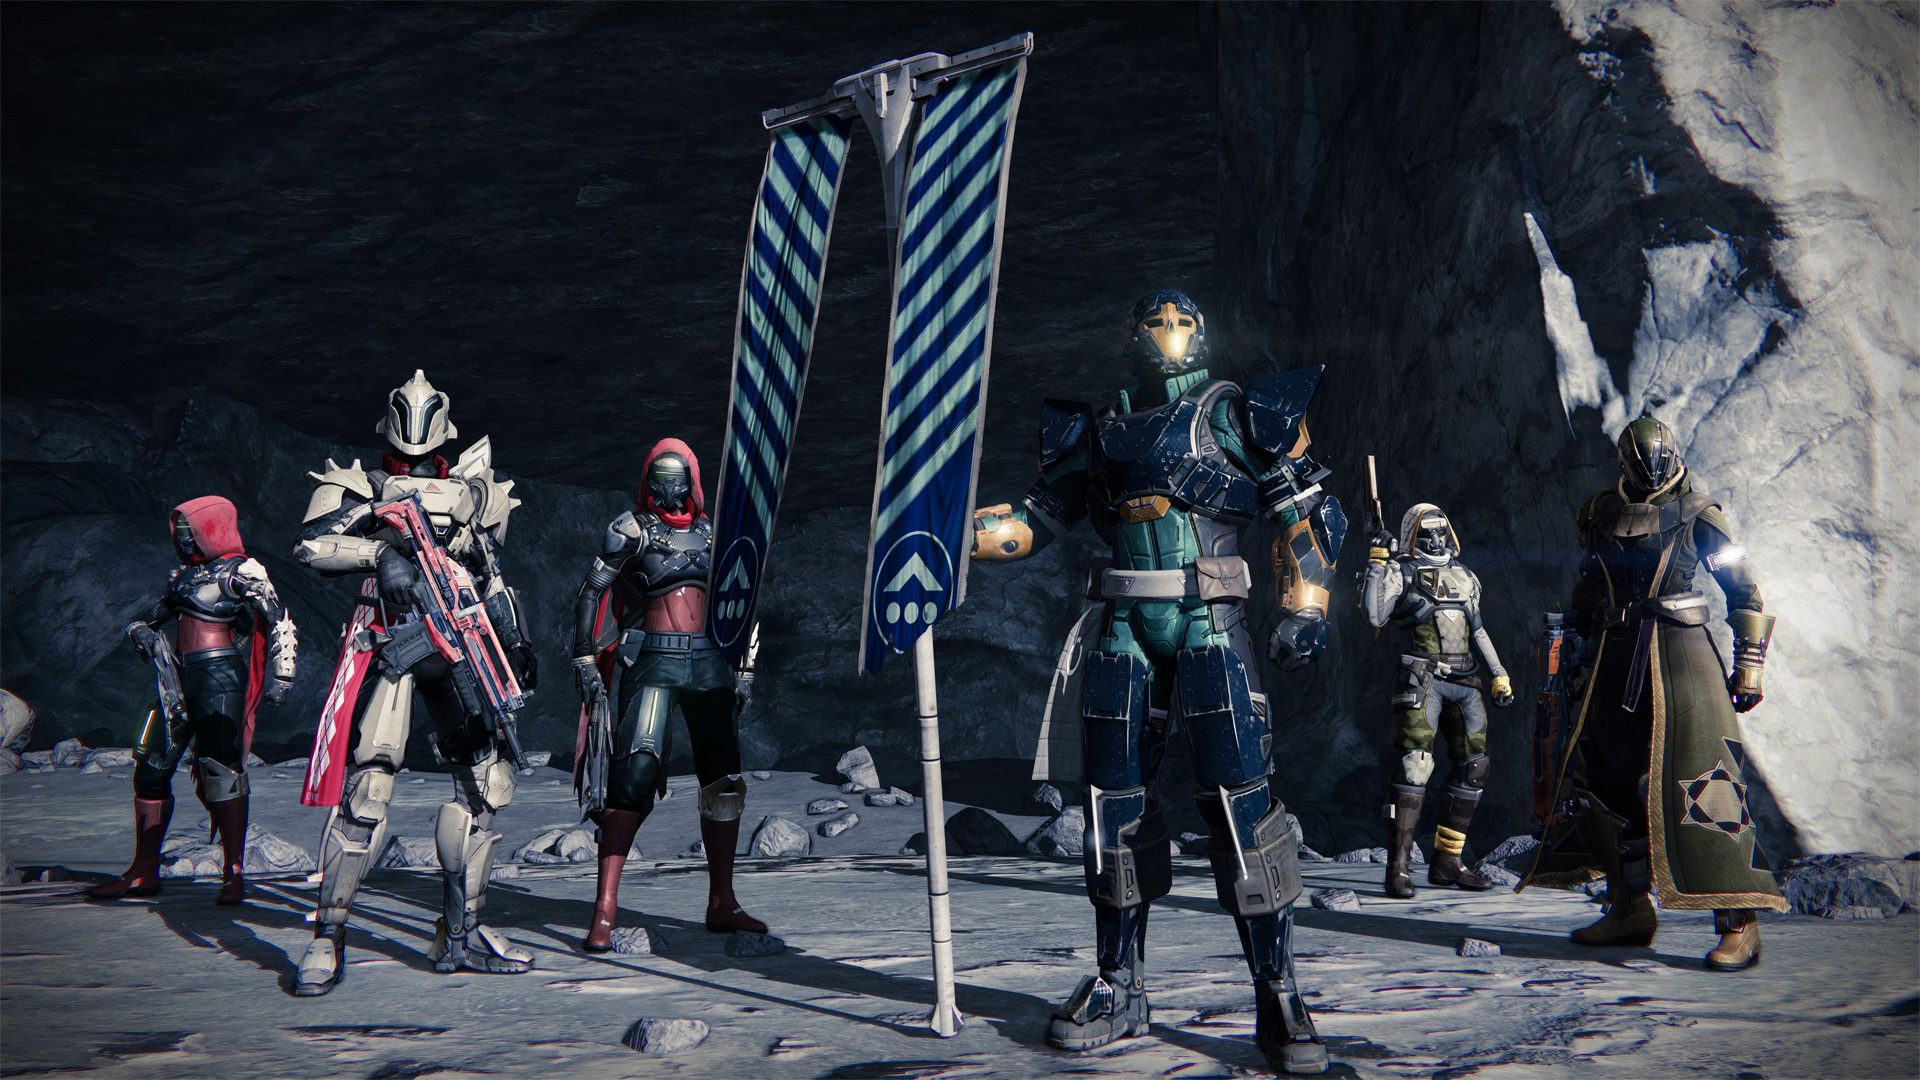 Explaining Destiny's reliance on current-gen systems for success, and hope for PC version